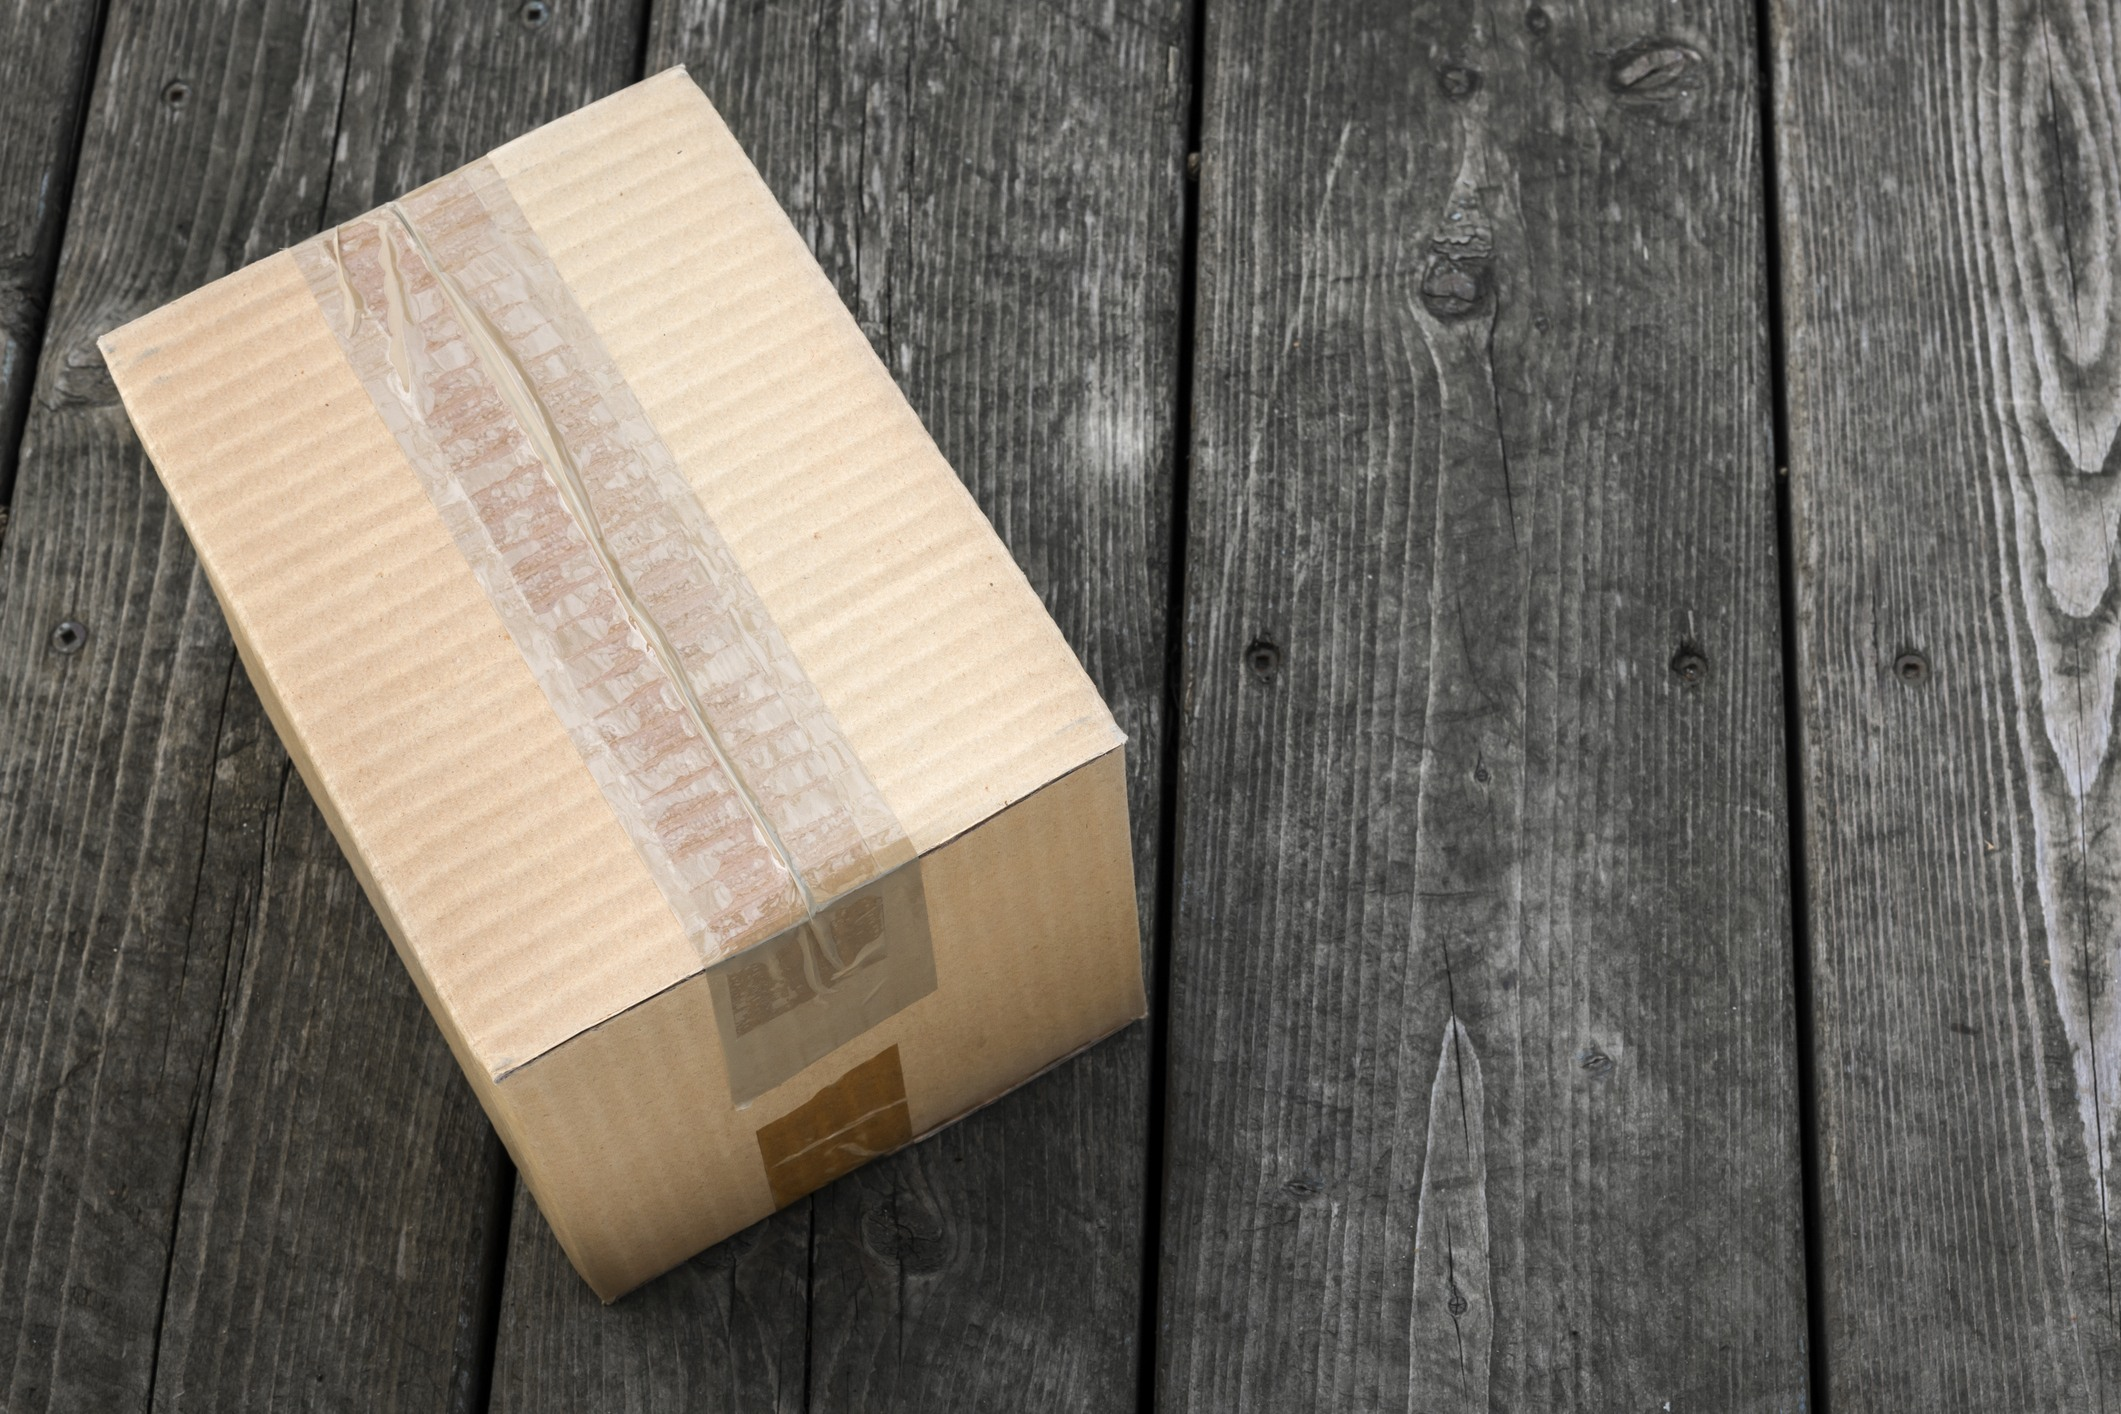 Unmarked package delivery